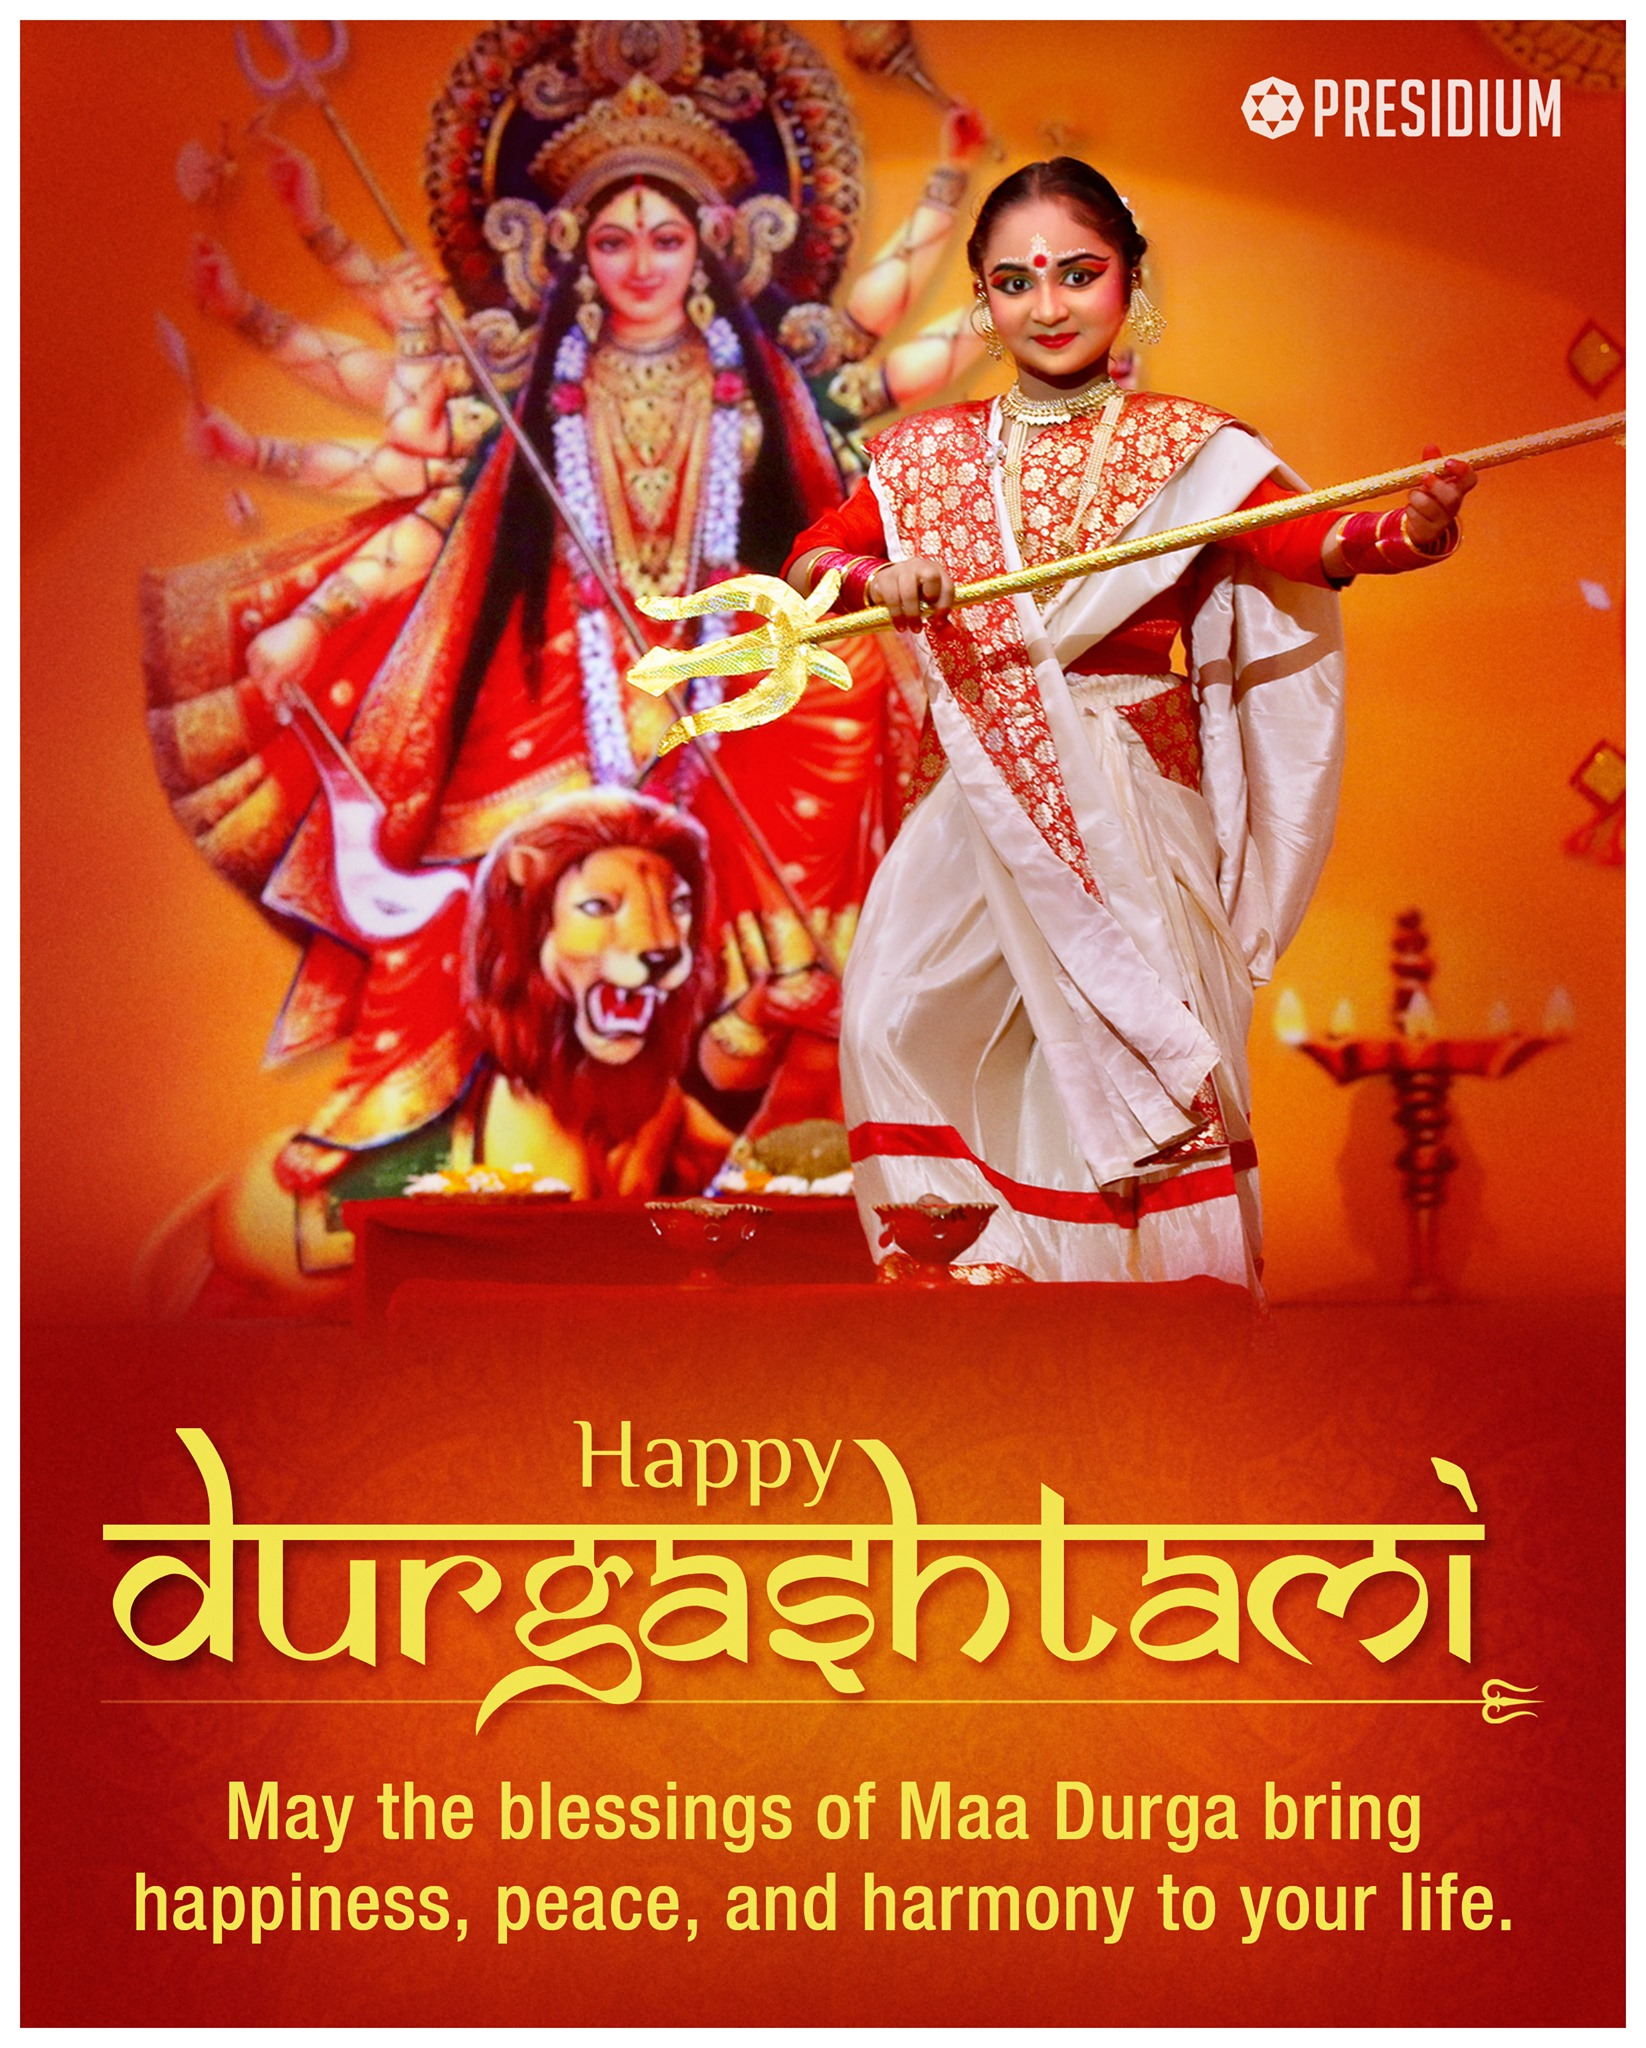 MAY GODDESS DURGA SHOWER HER DIVINE BLESSINGS ON ALL!